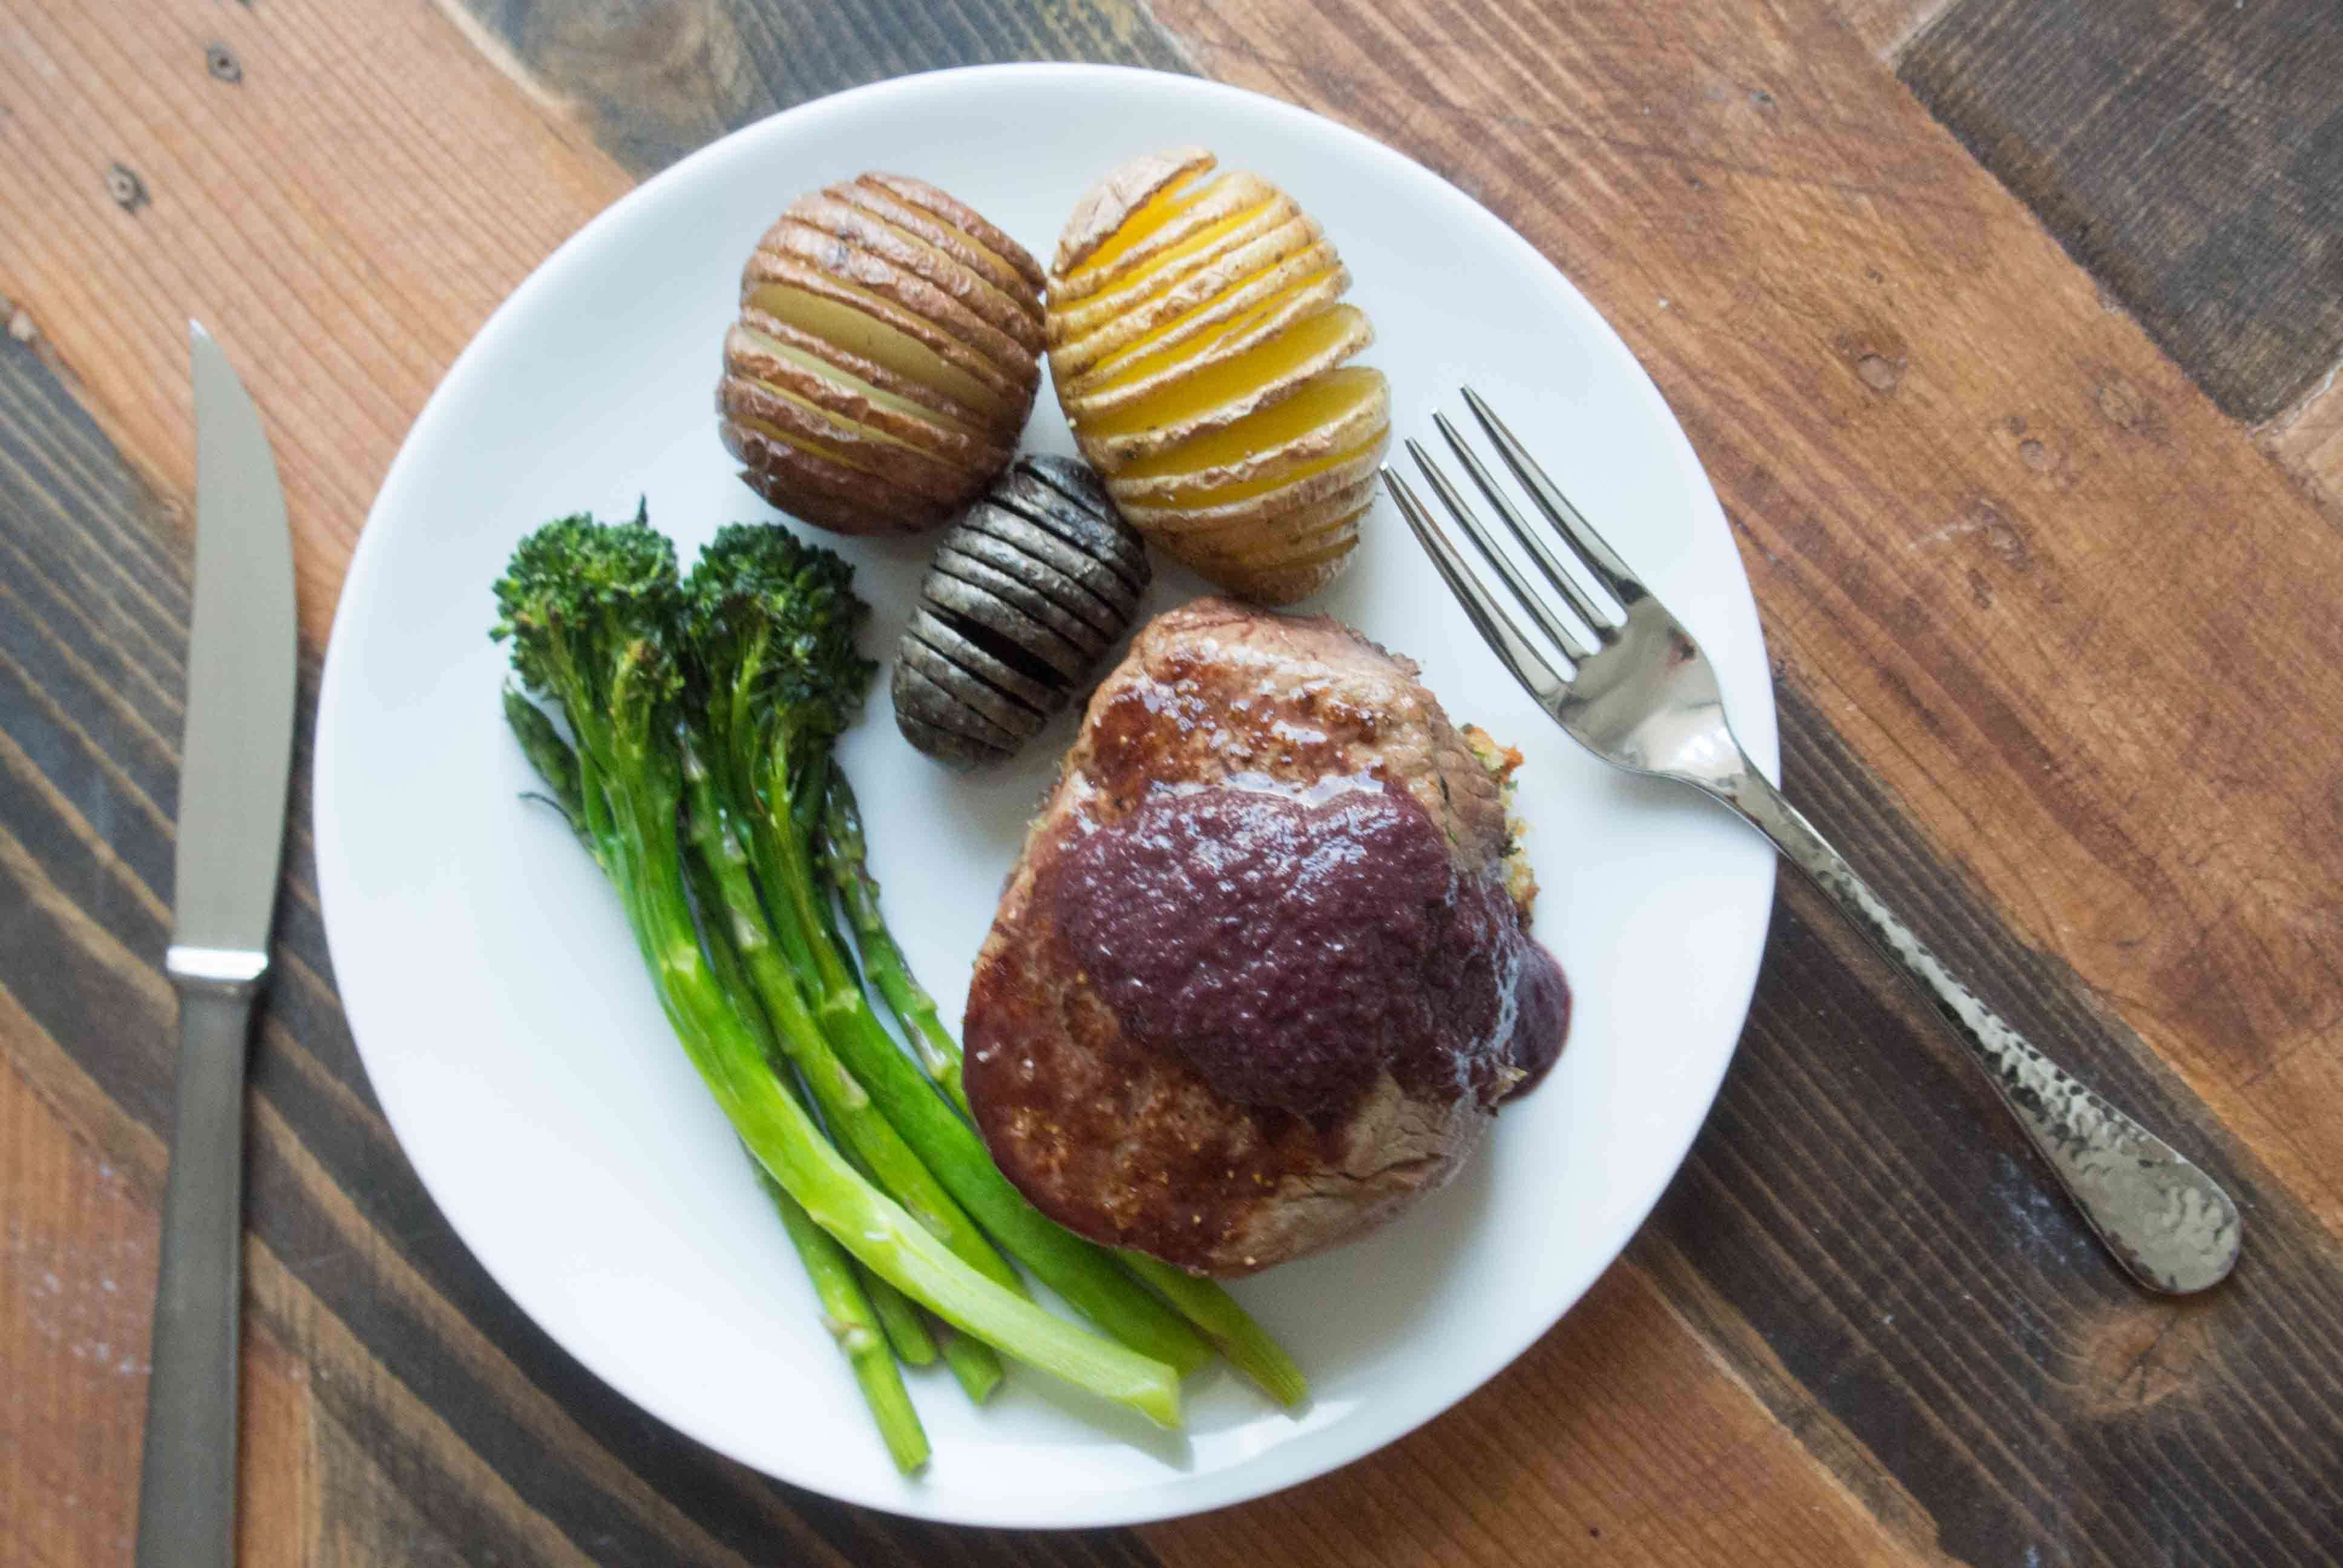 I am a meat and potatoes kind of girl. It's how I grew up, it's what I like, and I can't deny it. I don'tcook a lot ofsteaks at home though. I think steak is just one of t…